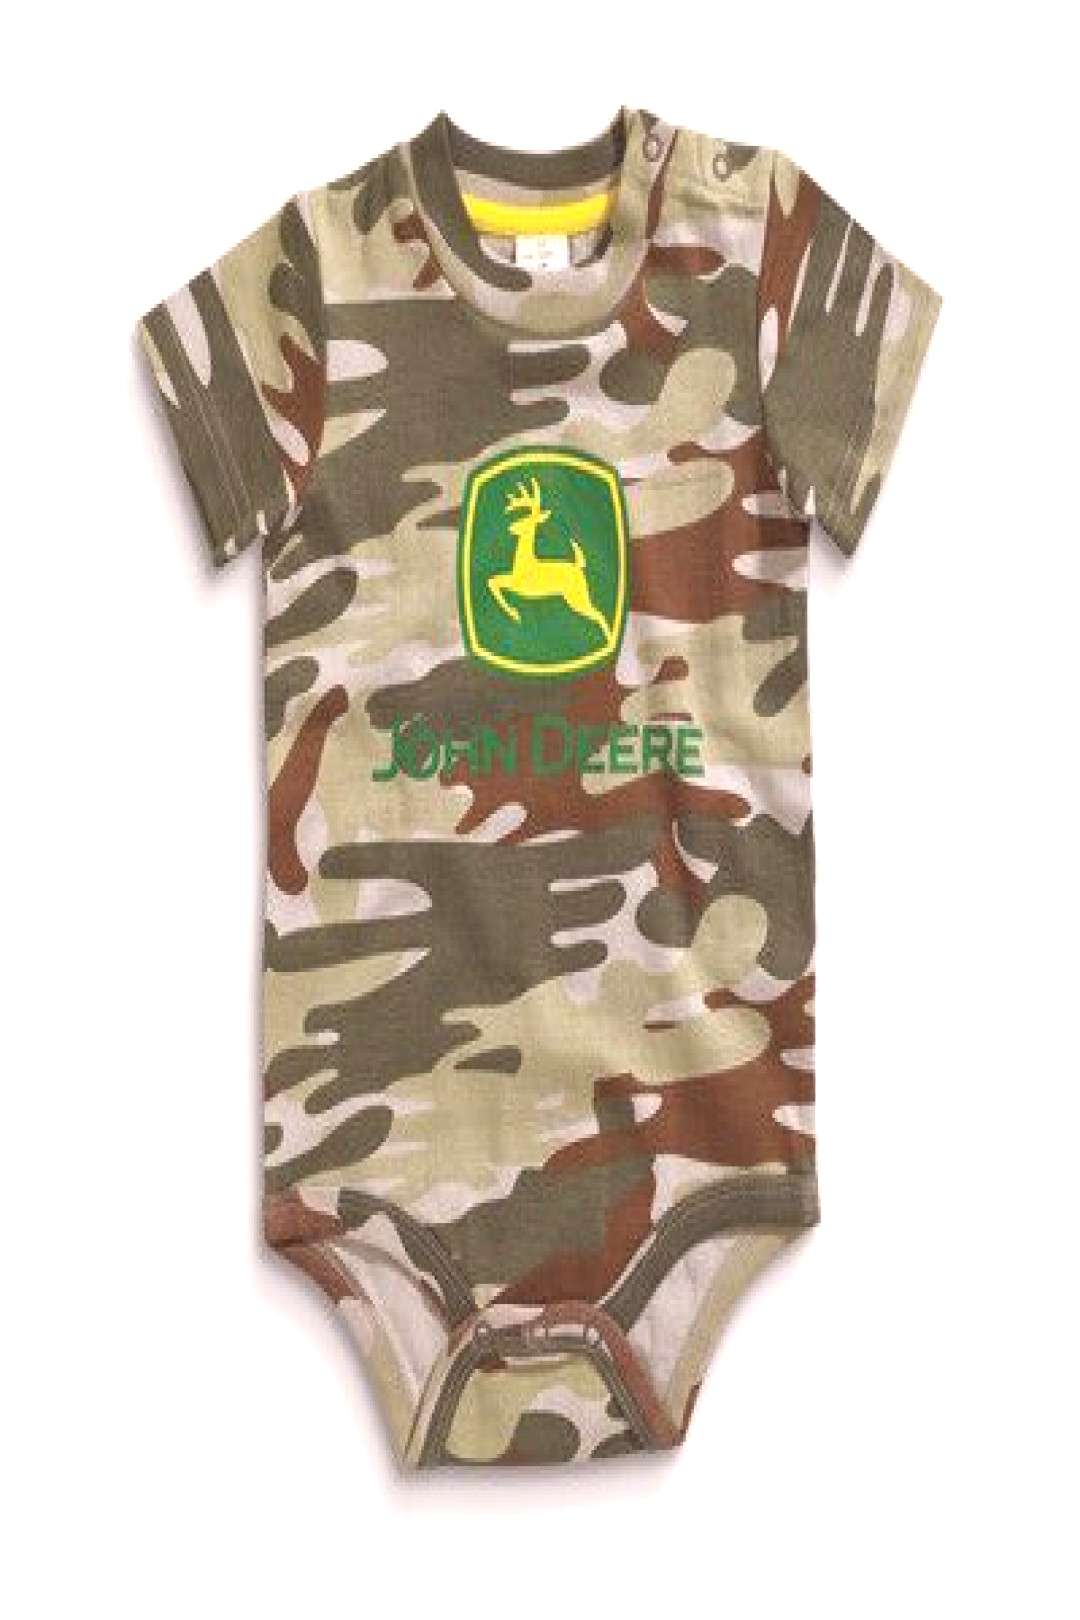 Best Picture For Baby Clothing temperature For Your Taste You are looking for something, and it